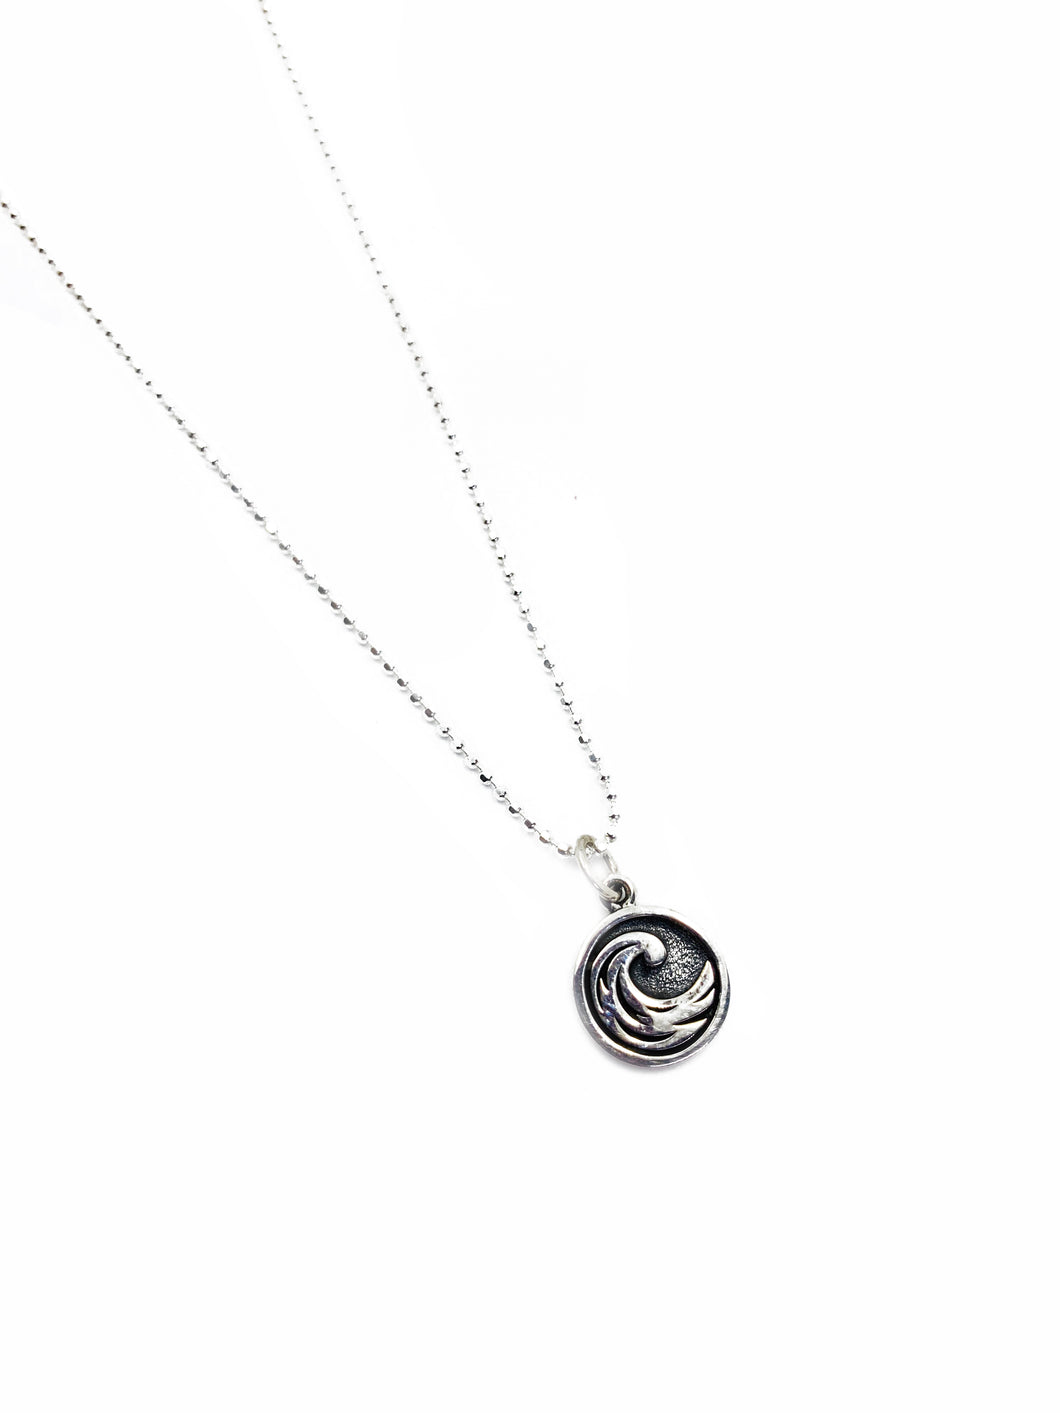 The Water Element - Sterling silver charm pendant chain